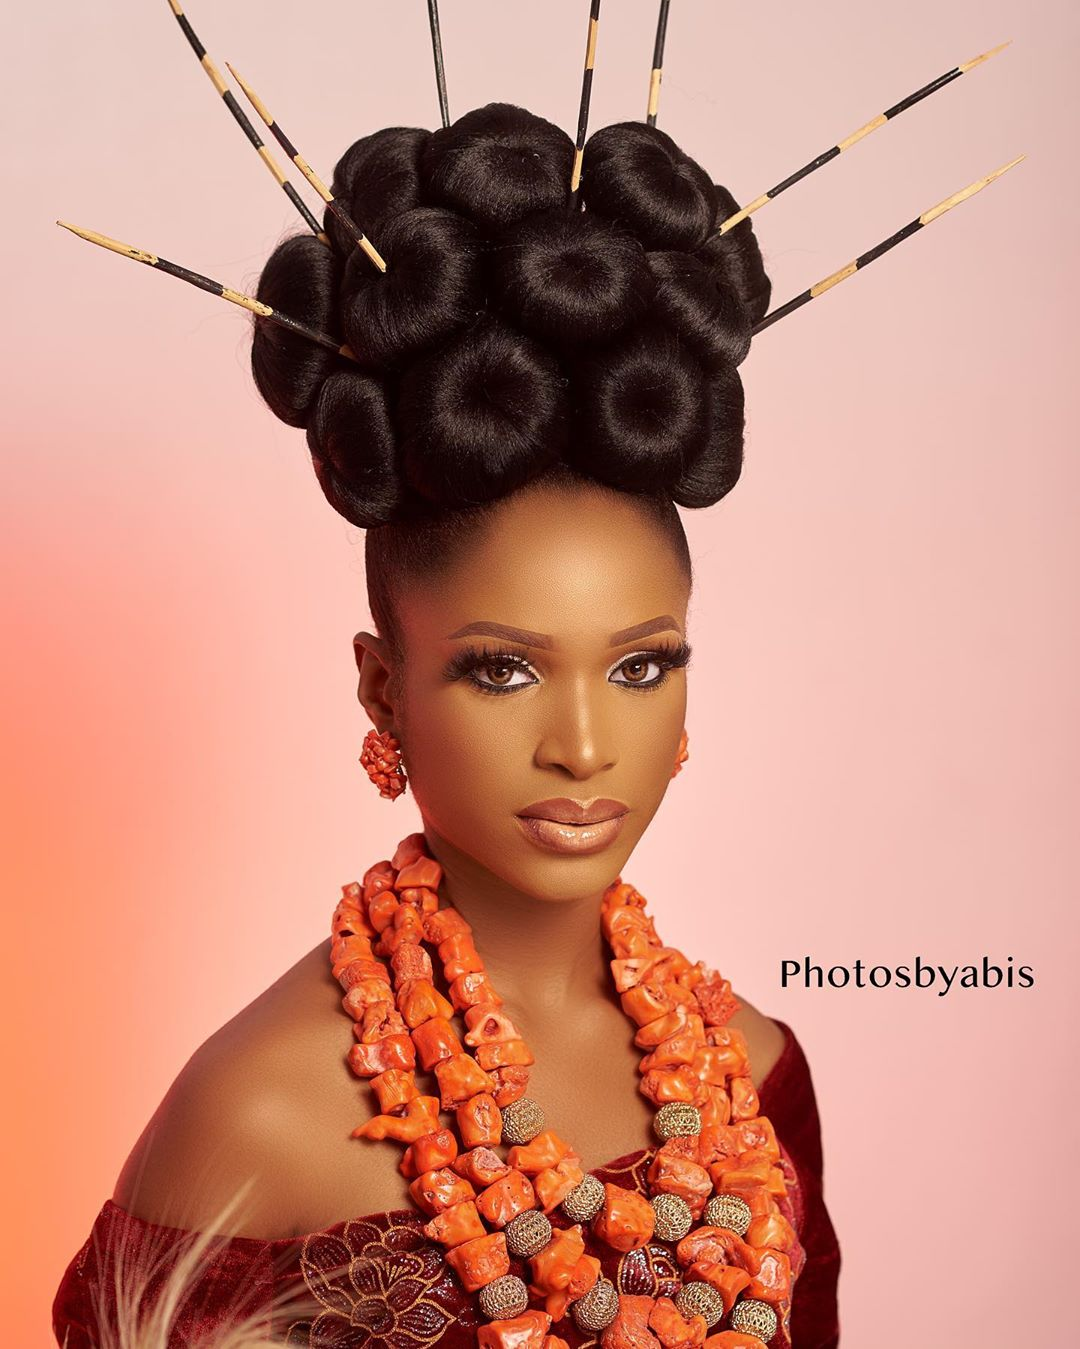 Hey Brides-to-be, Get Your Slay on with this Igbo Bridal Beauty Look